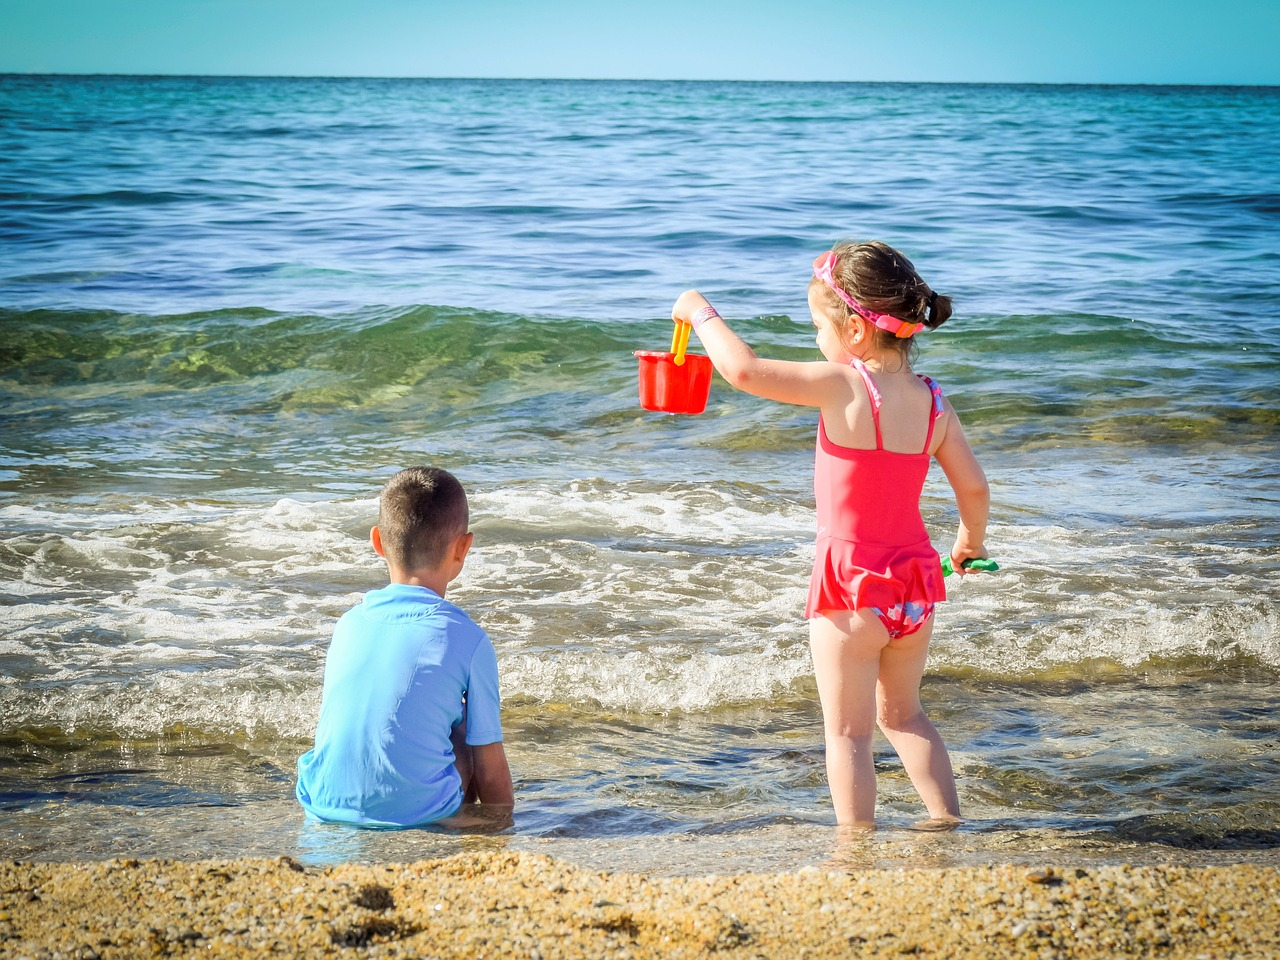 Two children playing at the beach.